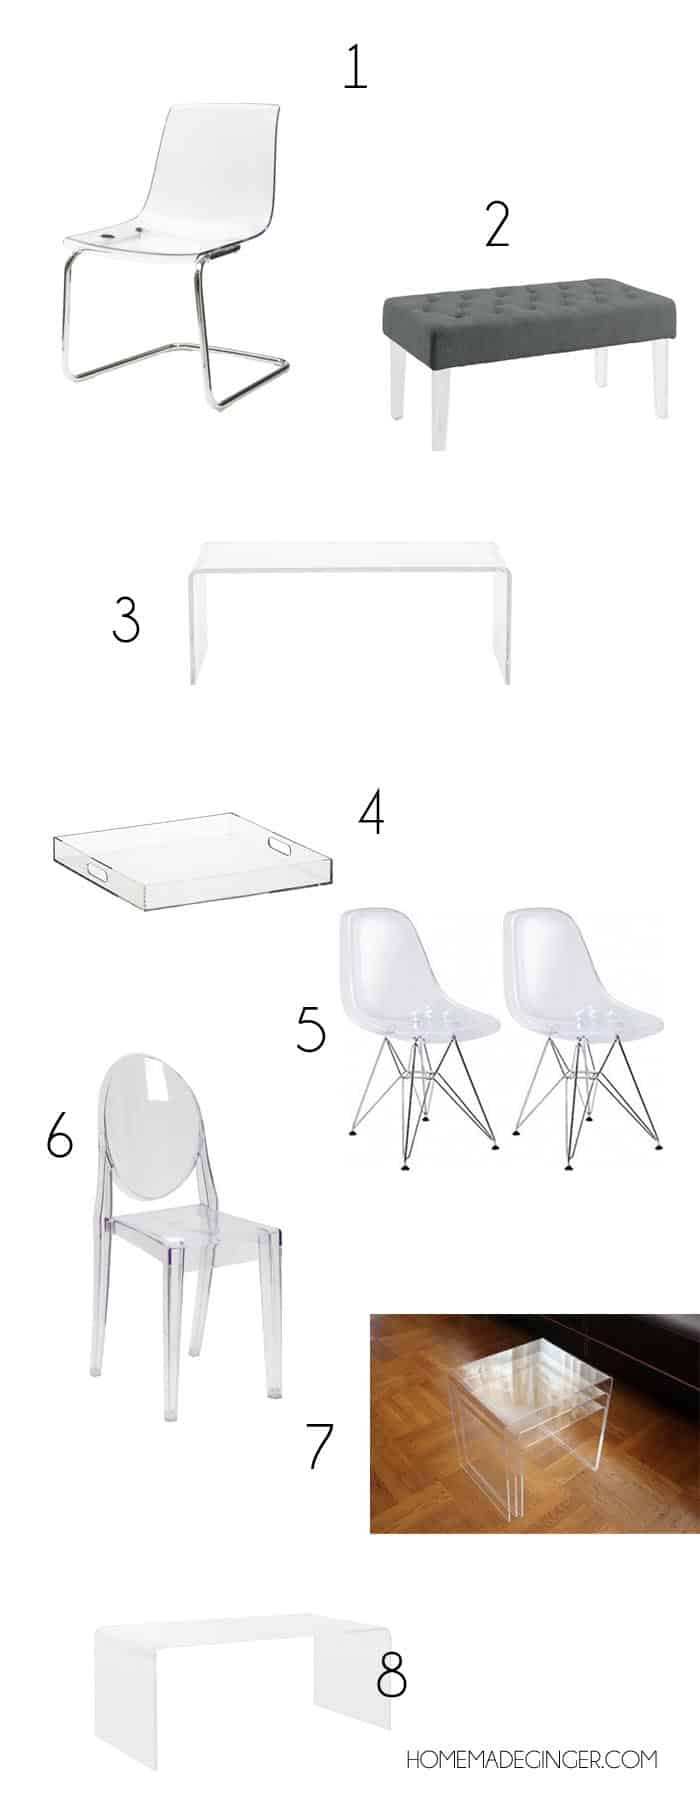 THE MOST AFFORDABLE PLACES TO BUY ACRYLIC FURNITURE2